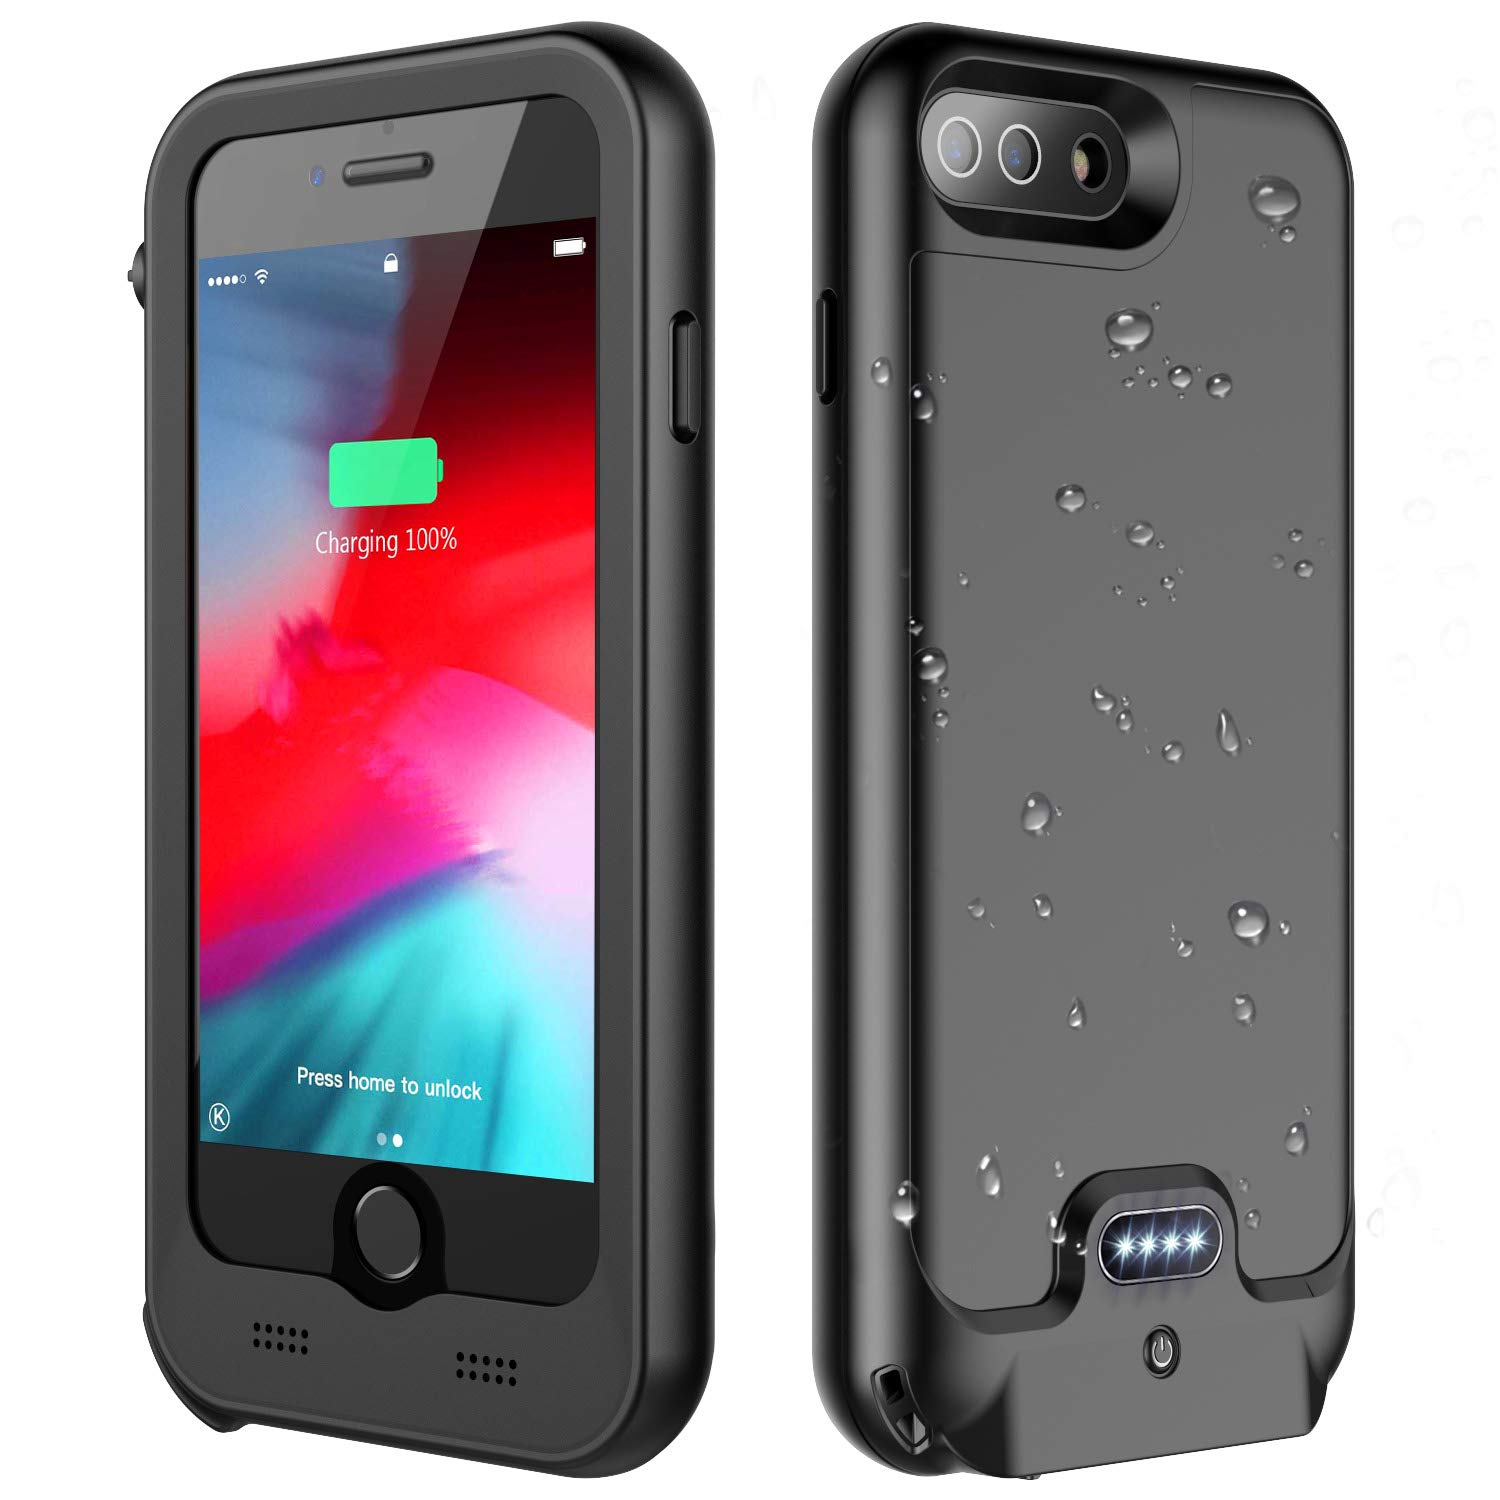 iPhone 7 Plus / 8 Plus Battery Case, ATOP 4800mAh Full-Body Rugged Charger Case with Built-in Screen Protector Compatible QI Wireless Charging IPX5 Waterproof Heavy Duty Shockproof Charging Case